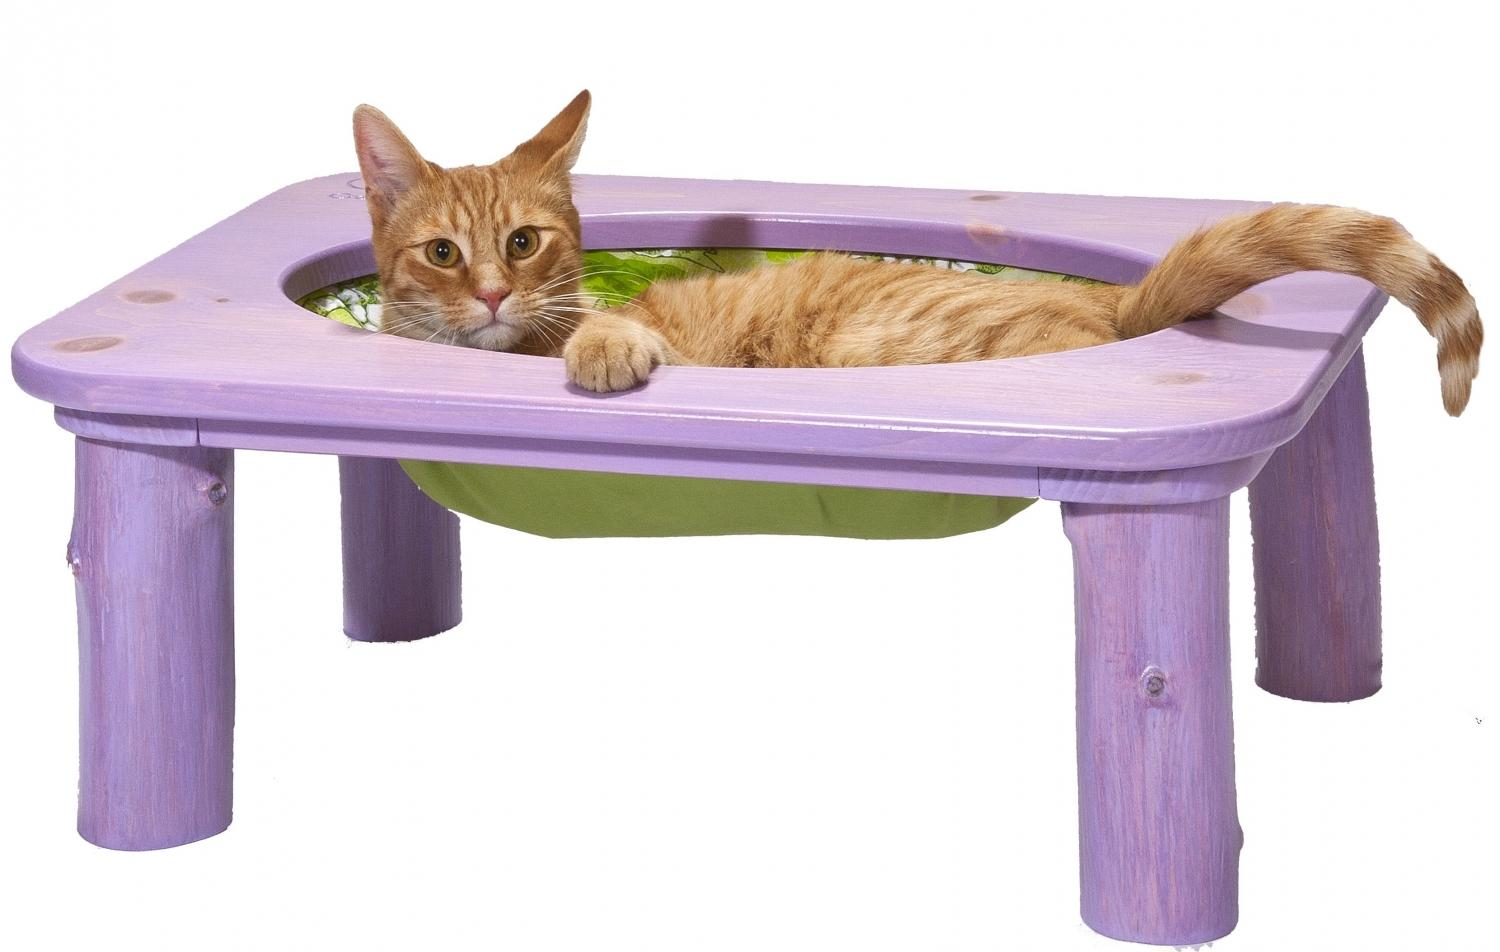 Purrrfect Peedee purple Cat hammock set